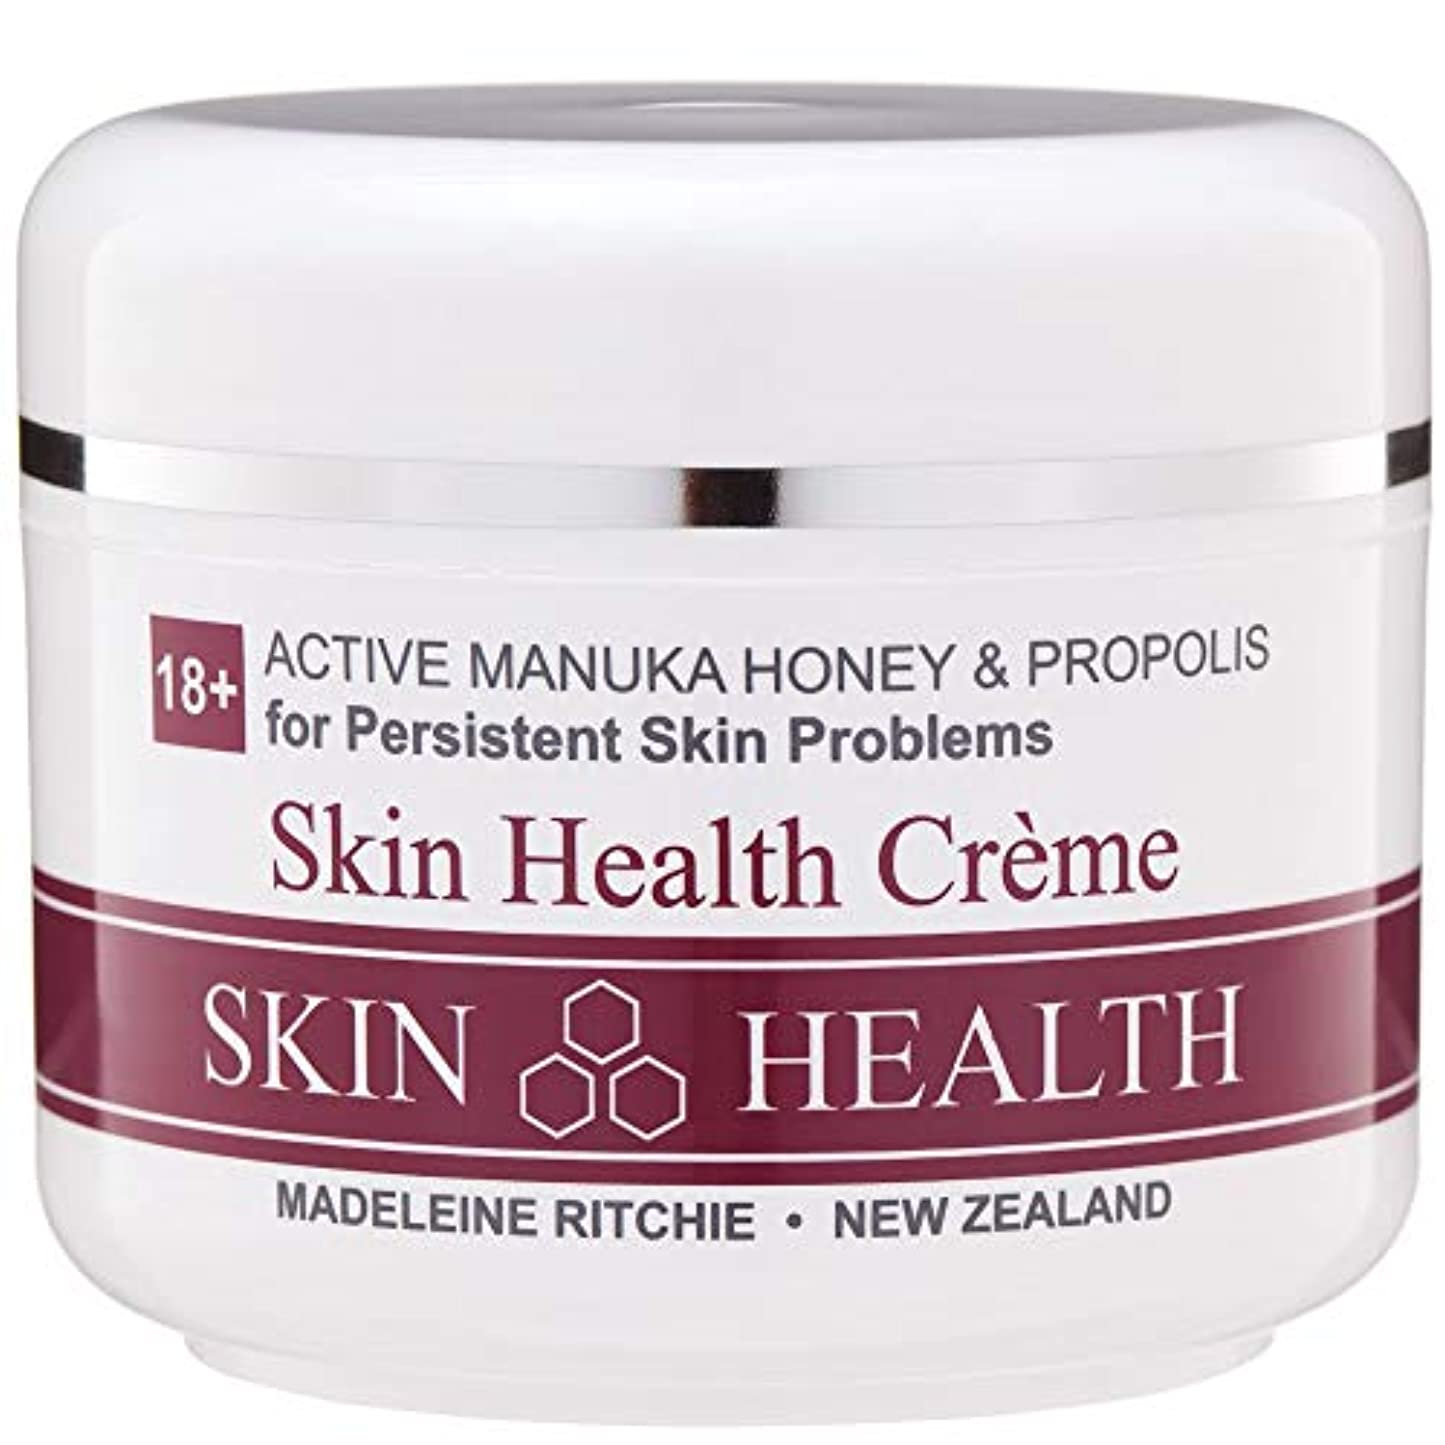 樹木後者タフMadeleine Ritchie New Zealand 18+ Active Manuka Honey Skin Health Cream Jar 100ml